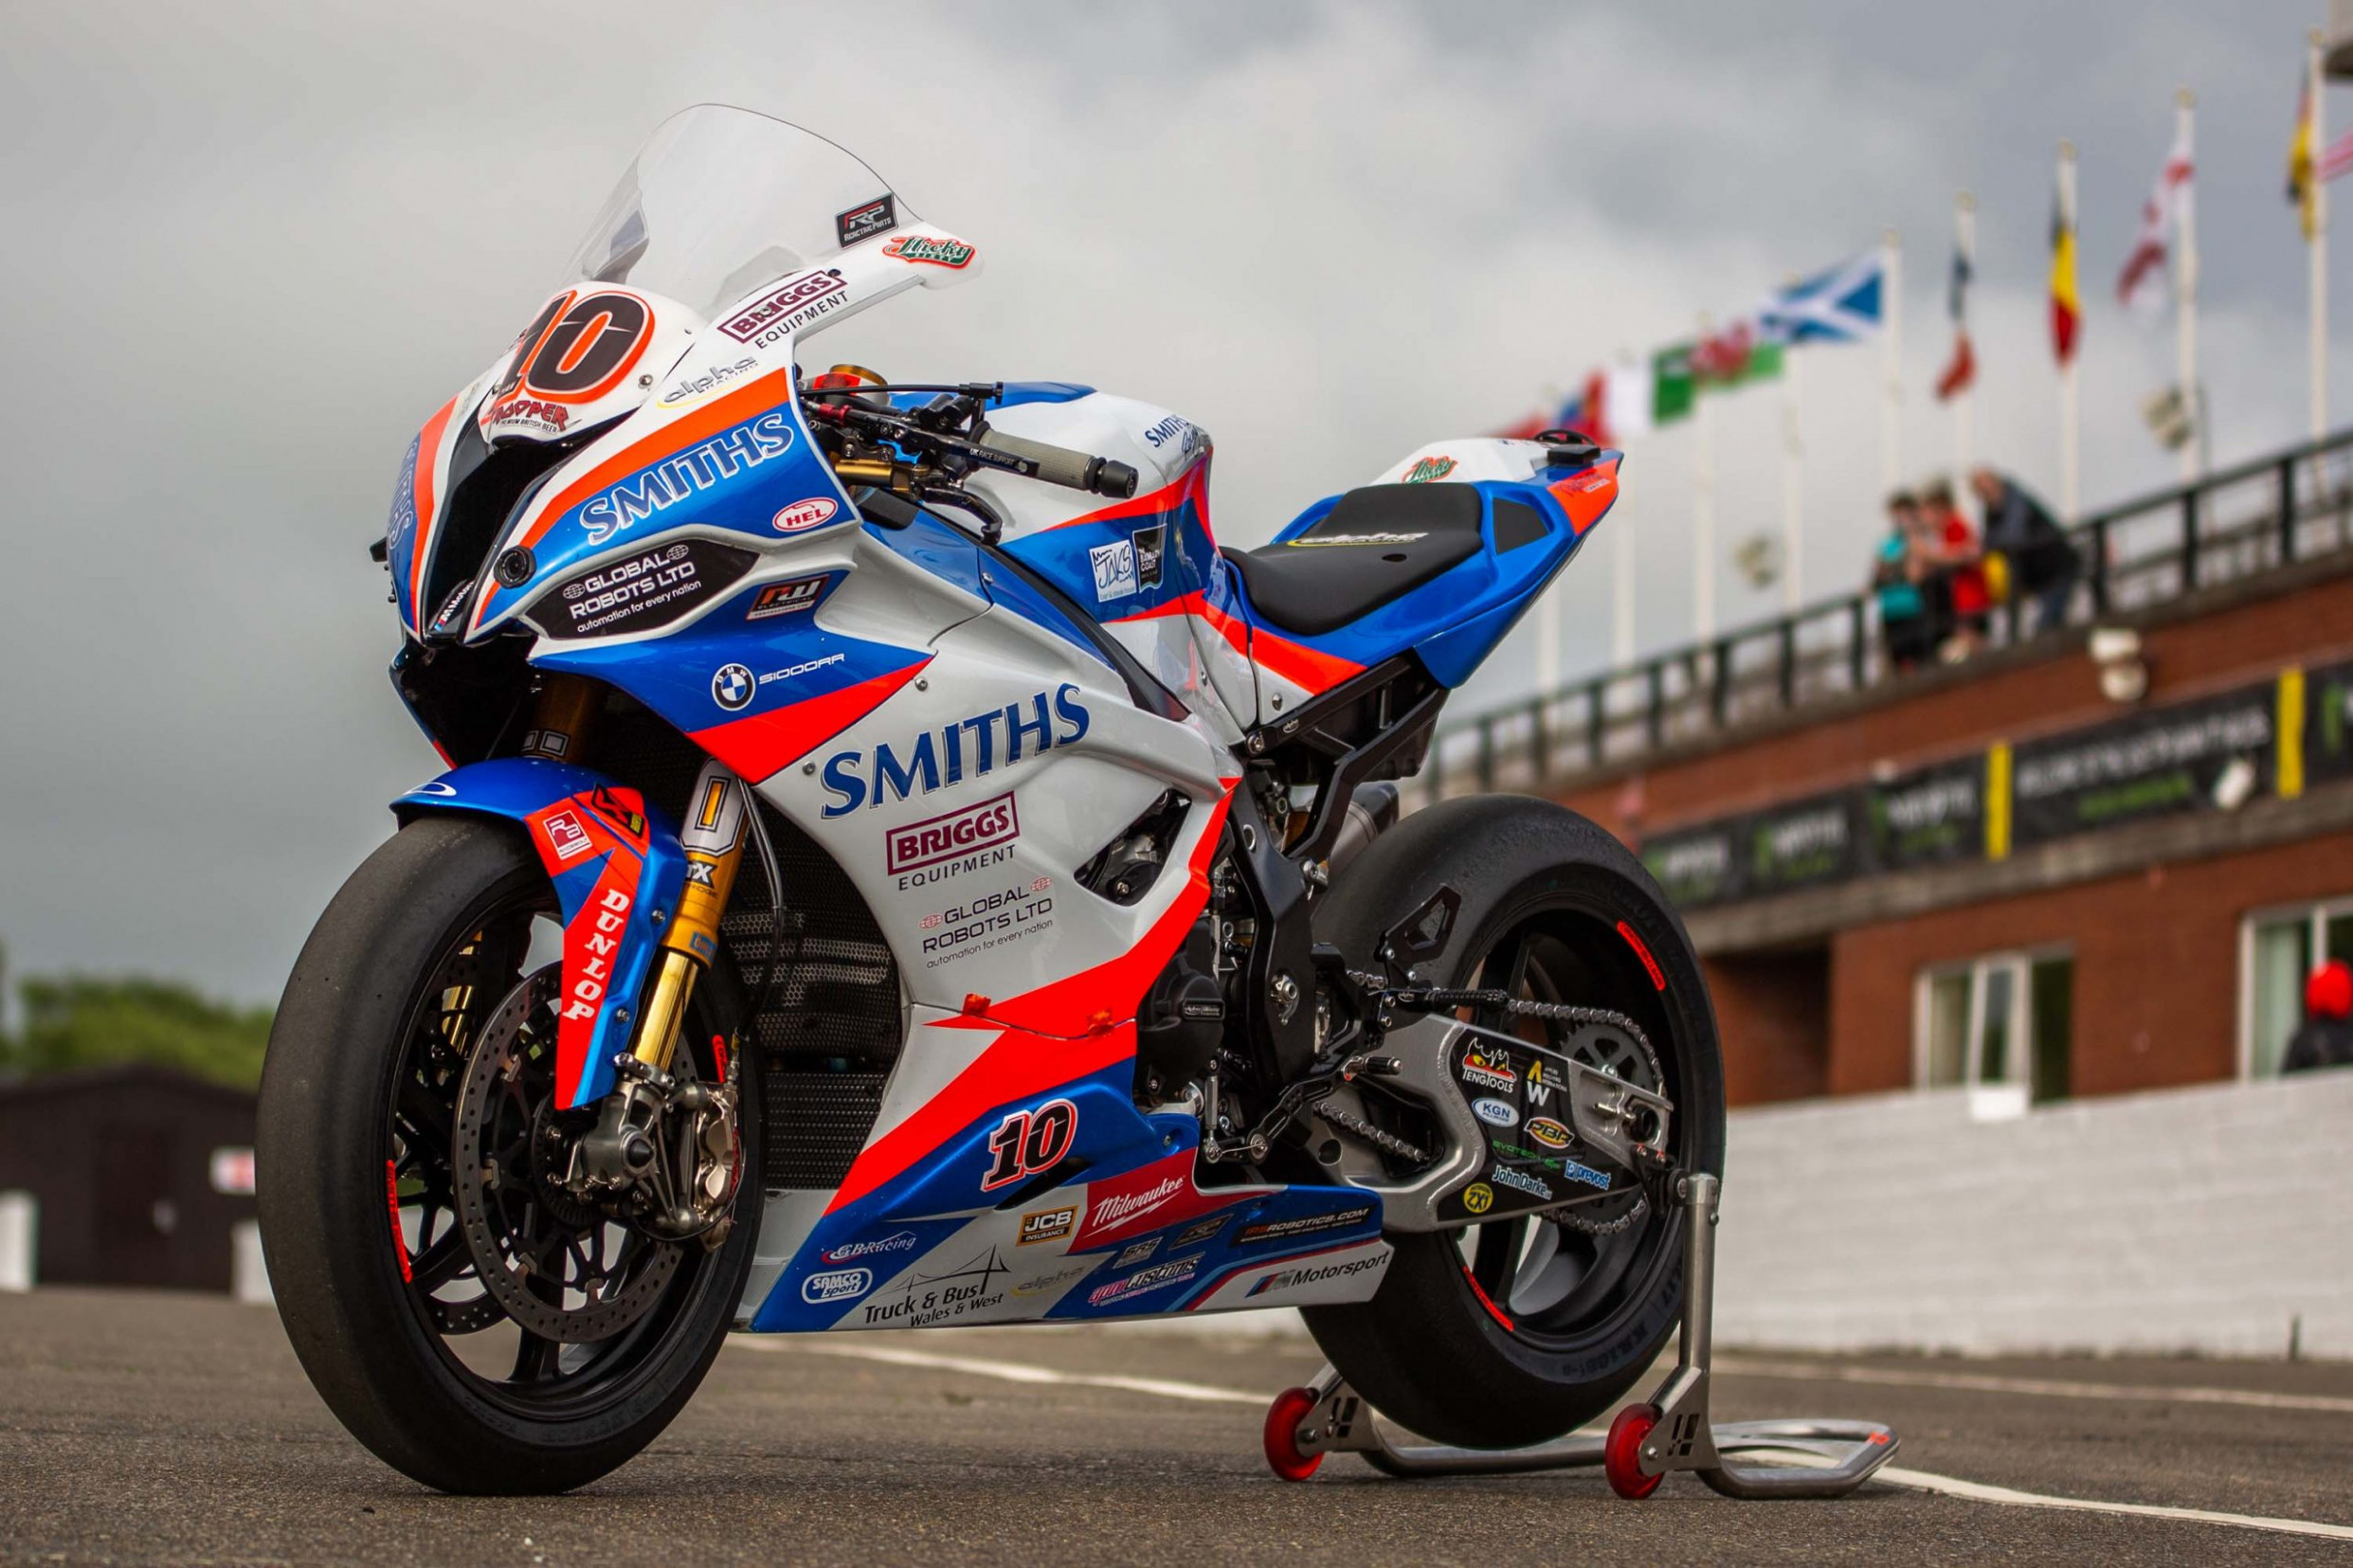 Review and Release date 2022 BMW S1000Rr